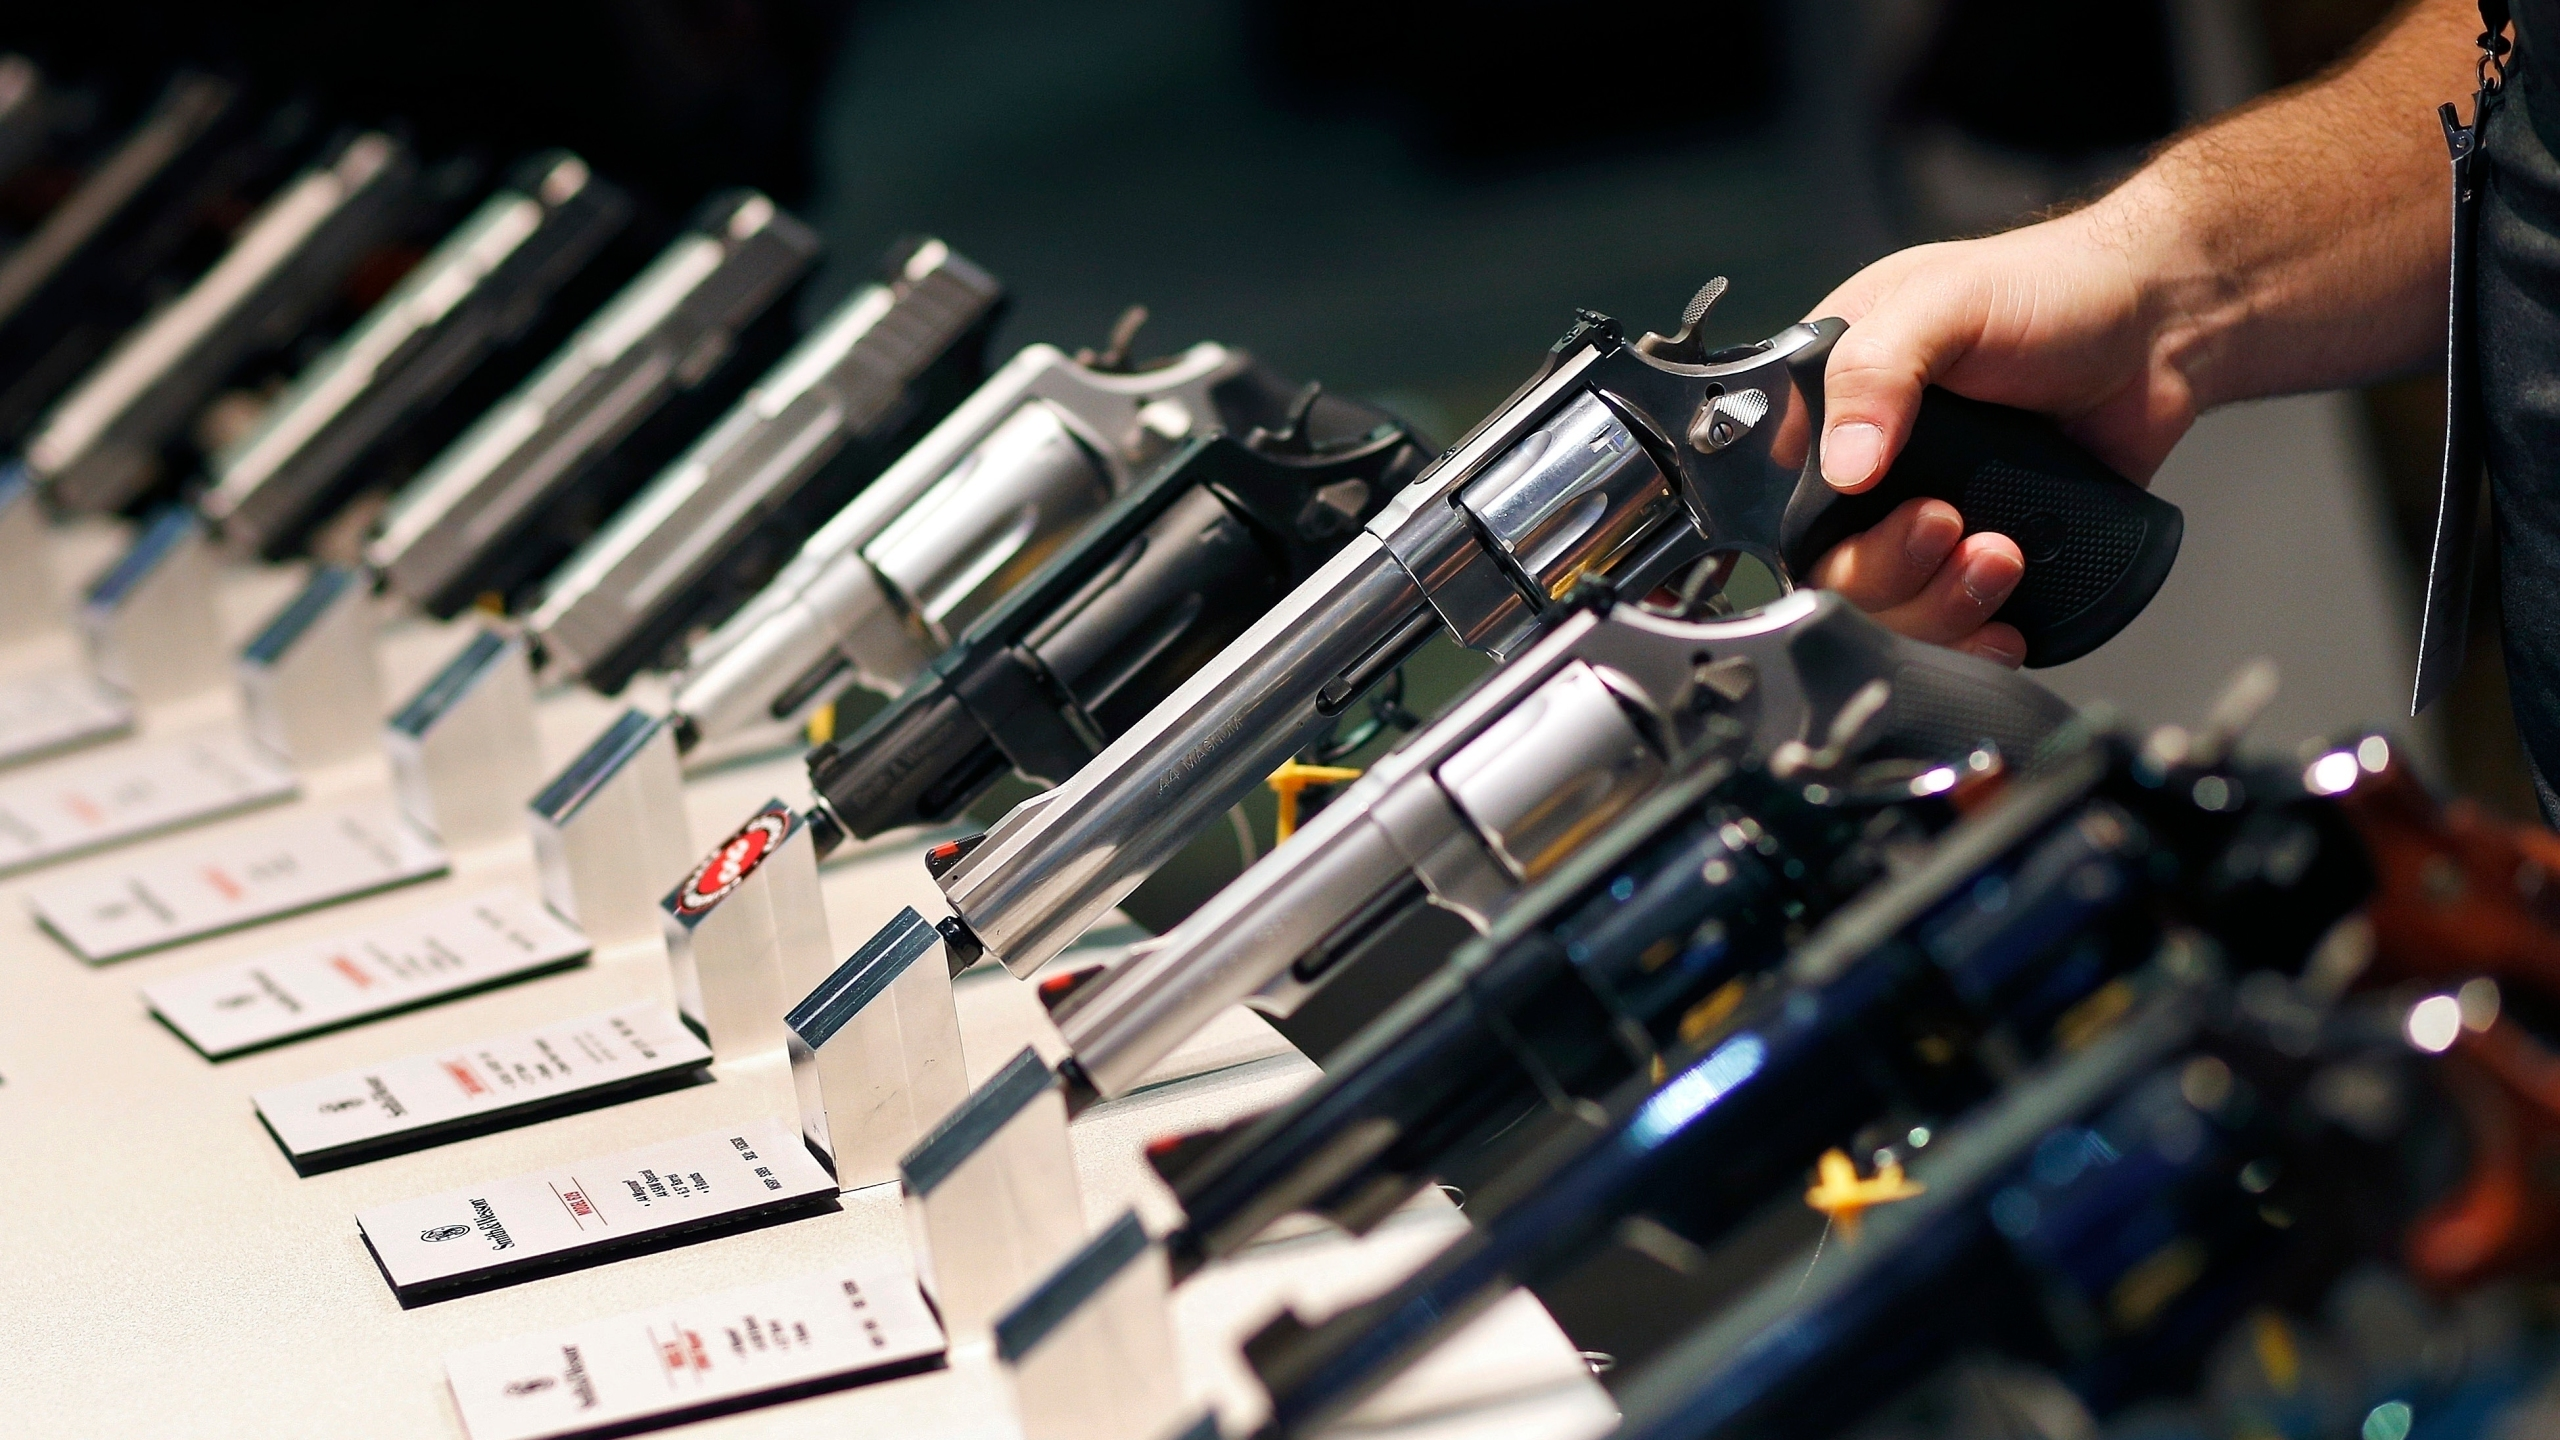 Handguns are displayed at the Smith & Wesson booth at the Shooting, Hunting and Outdoor Trade Show in Las Vegas on Jan. 19. 2016. (John Locher / Associated Press)